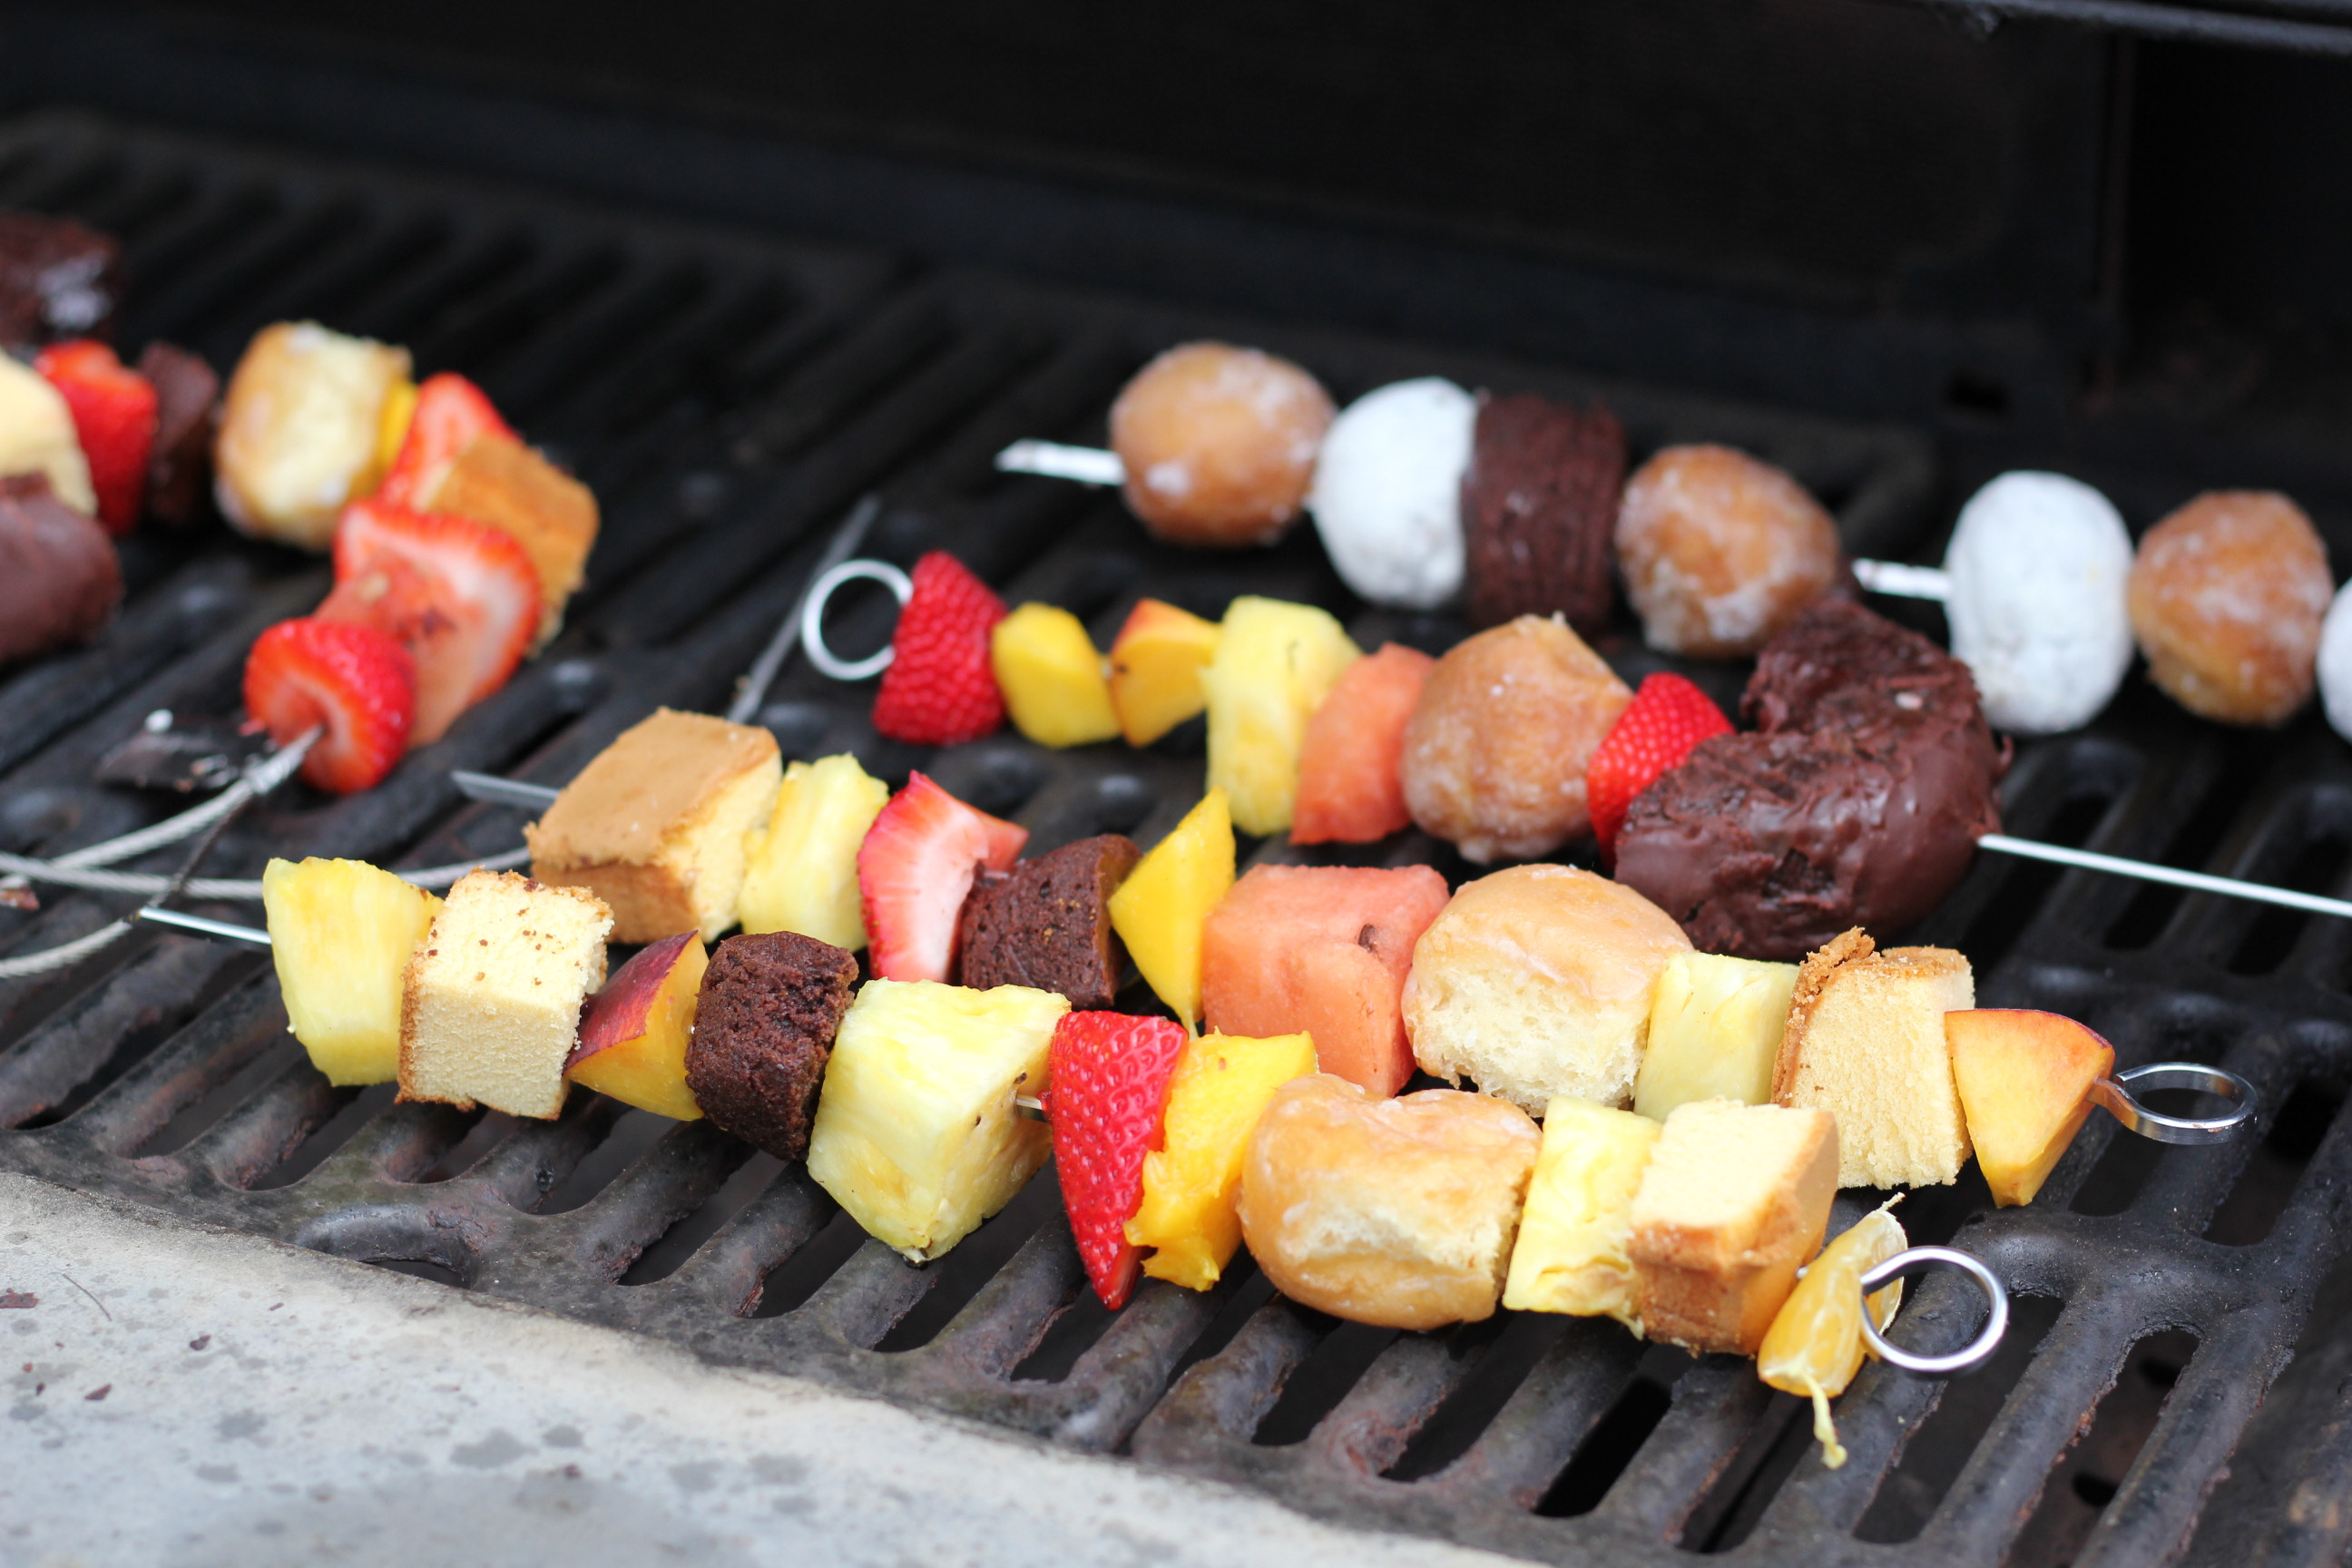 Donut and fruit dessert kebabs skewered on a grill.